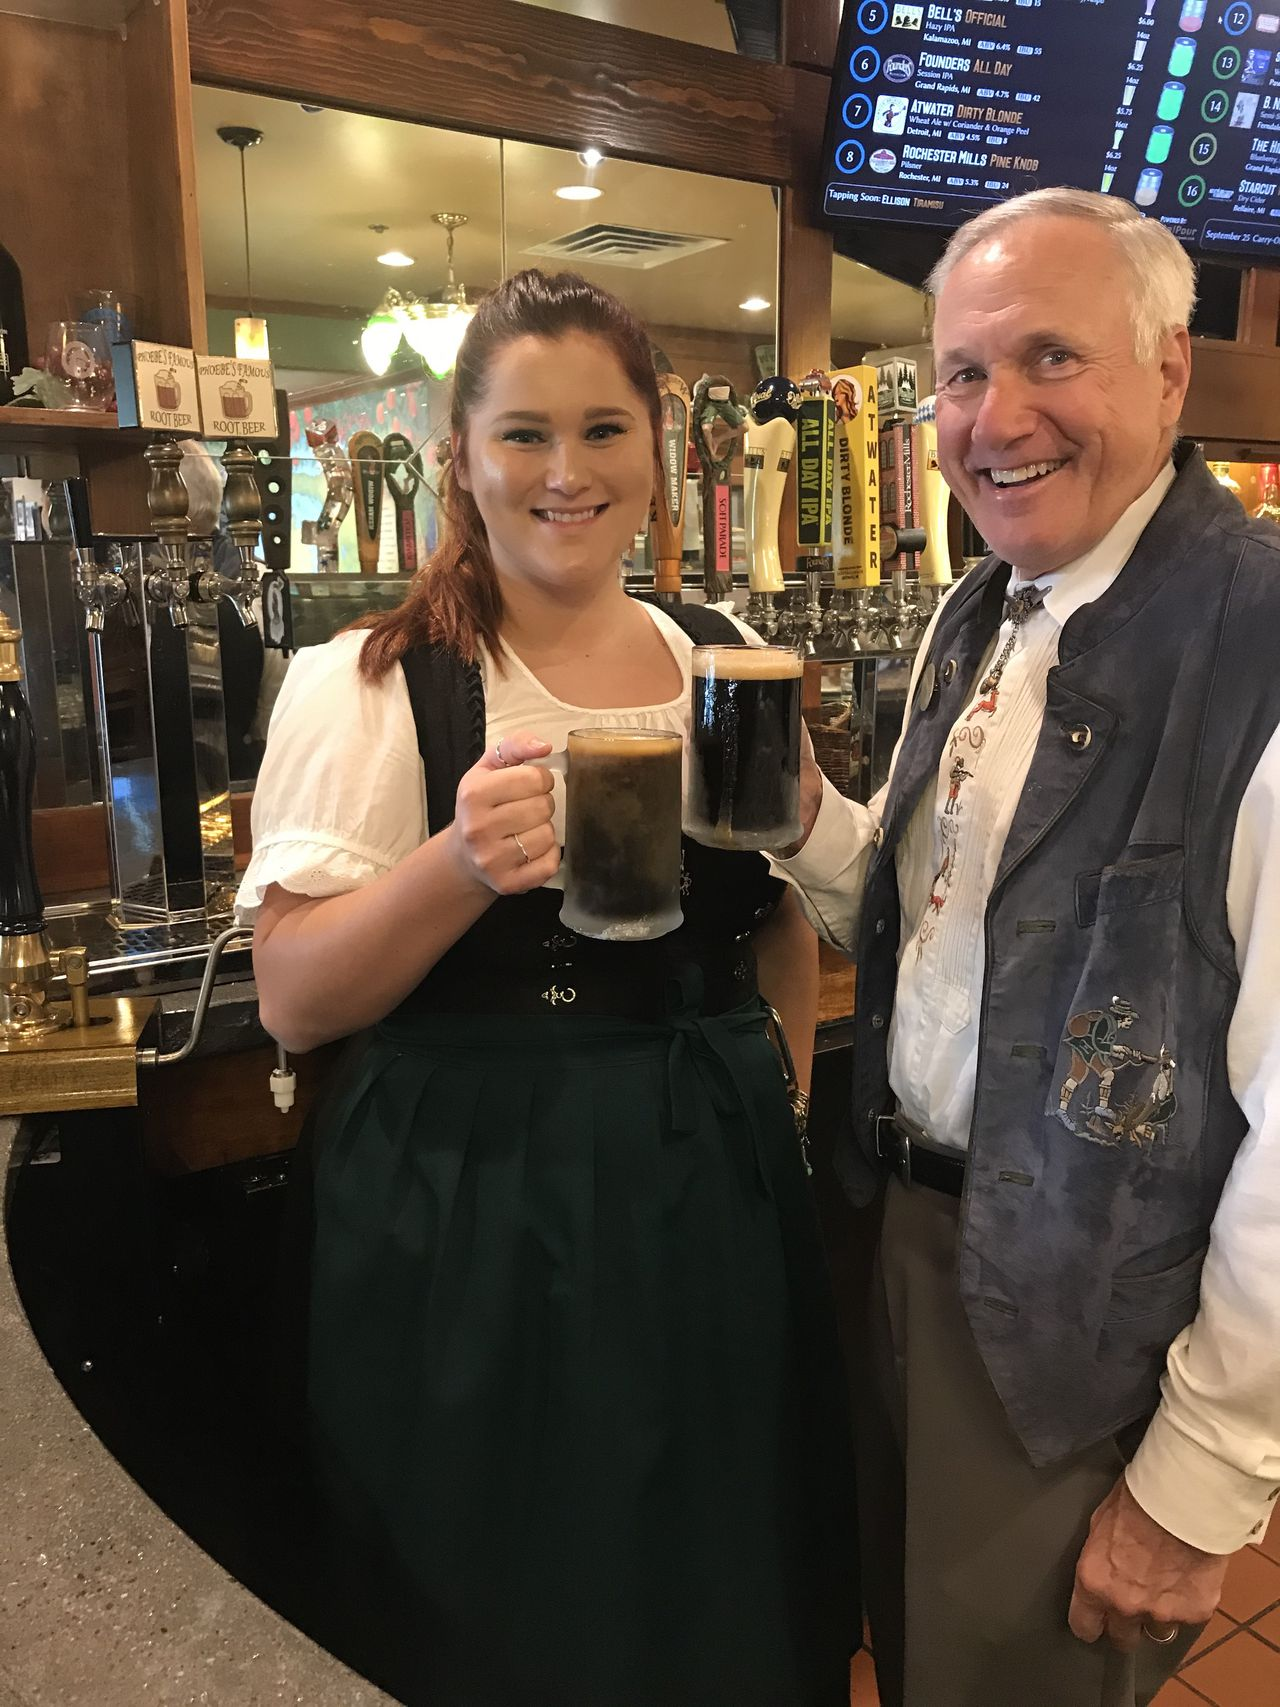 The Bavarian Inn President Bill Zehnder and head root beer maker Phoebe Beyerlein show off their house made root beer